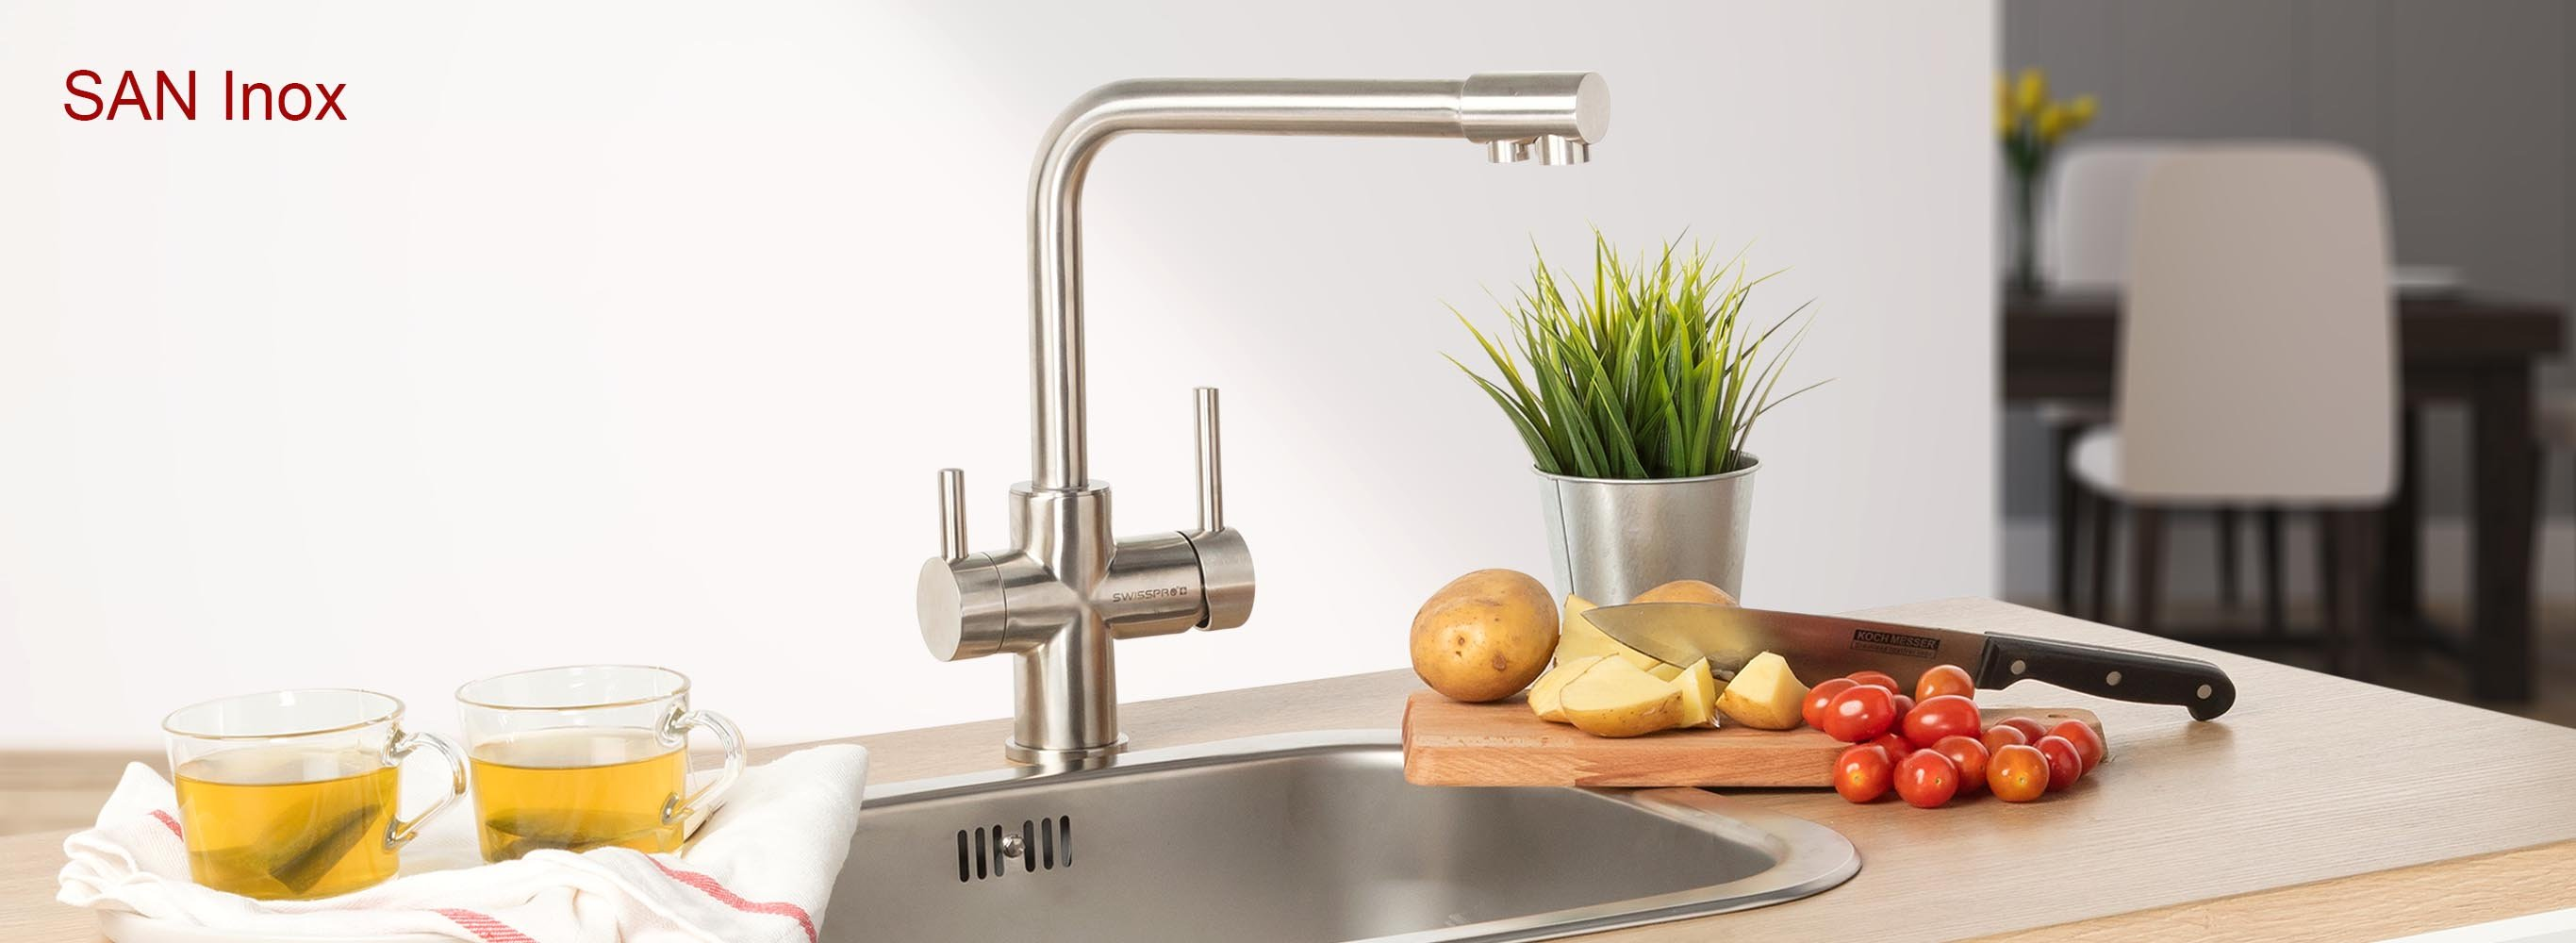 SAN Inox - All-In-One Faucet